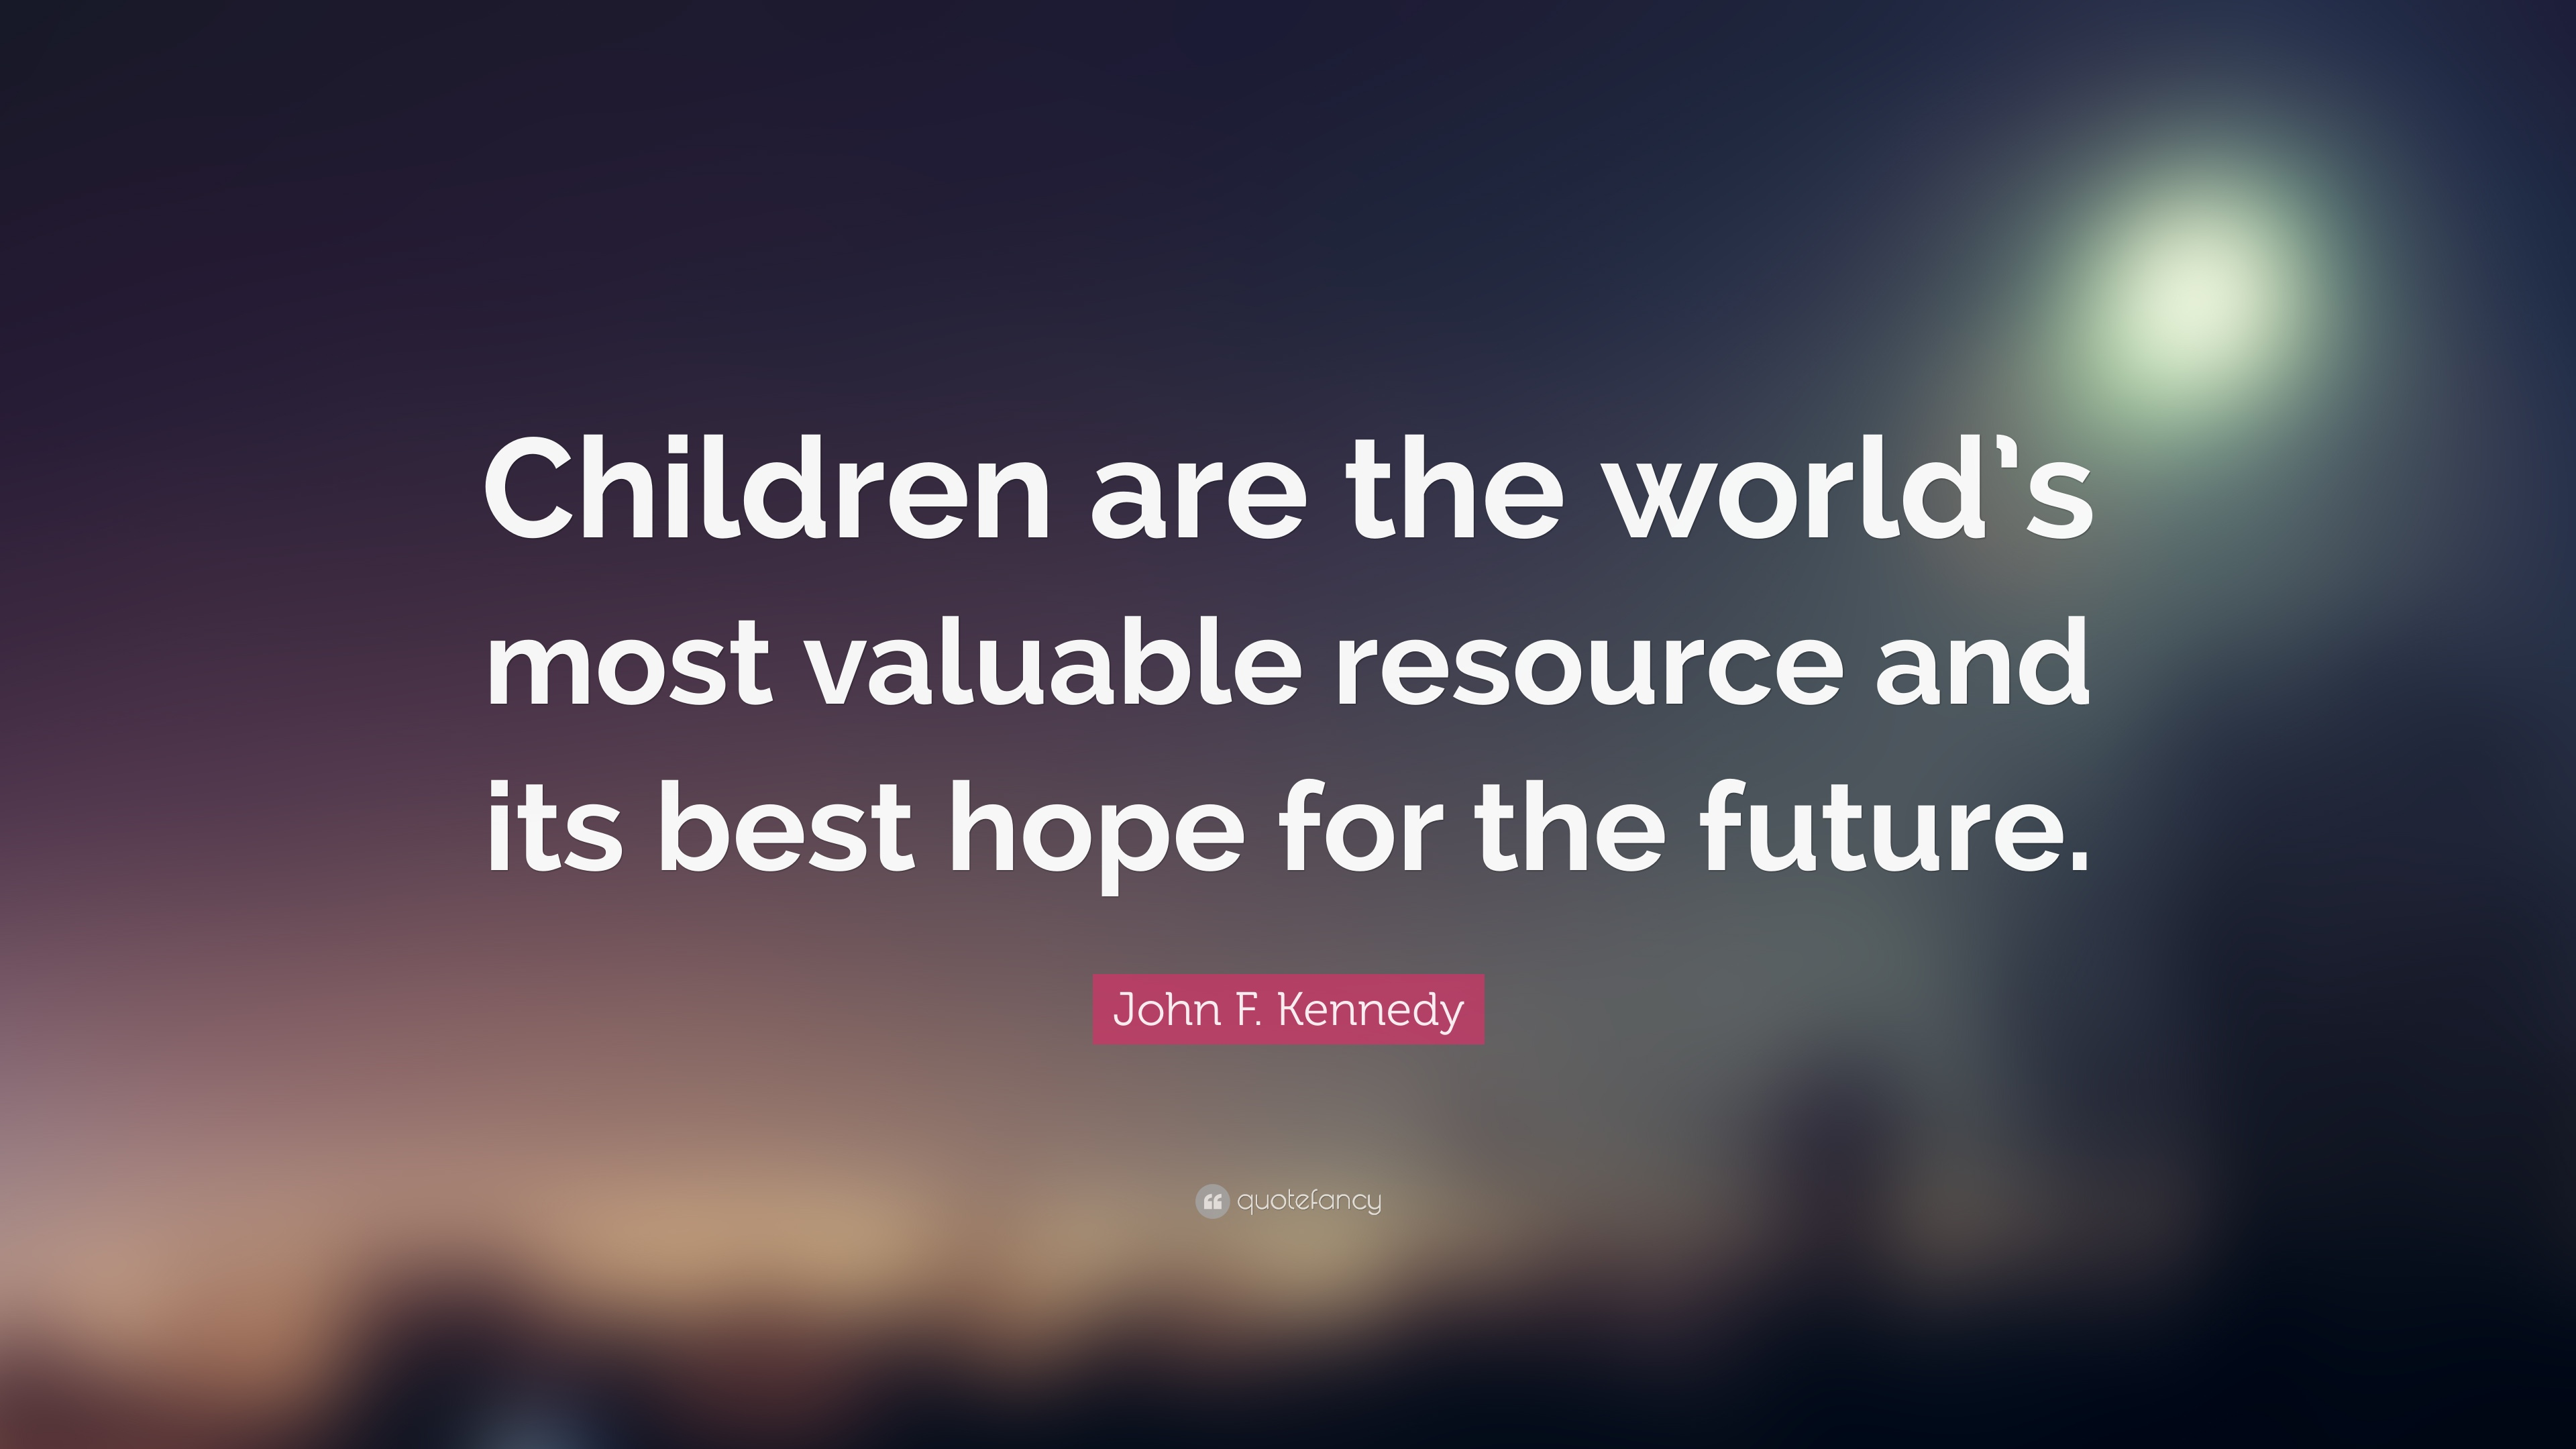 Quotes About Children (40 Wallpapers)